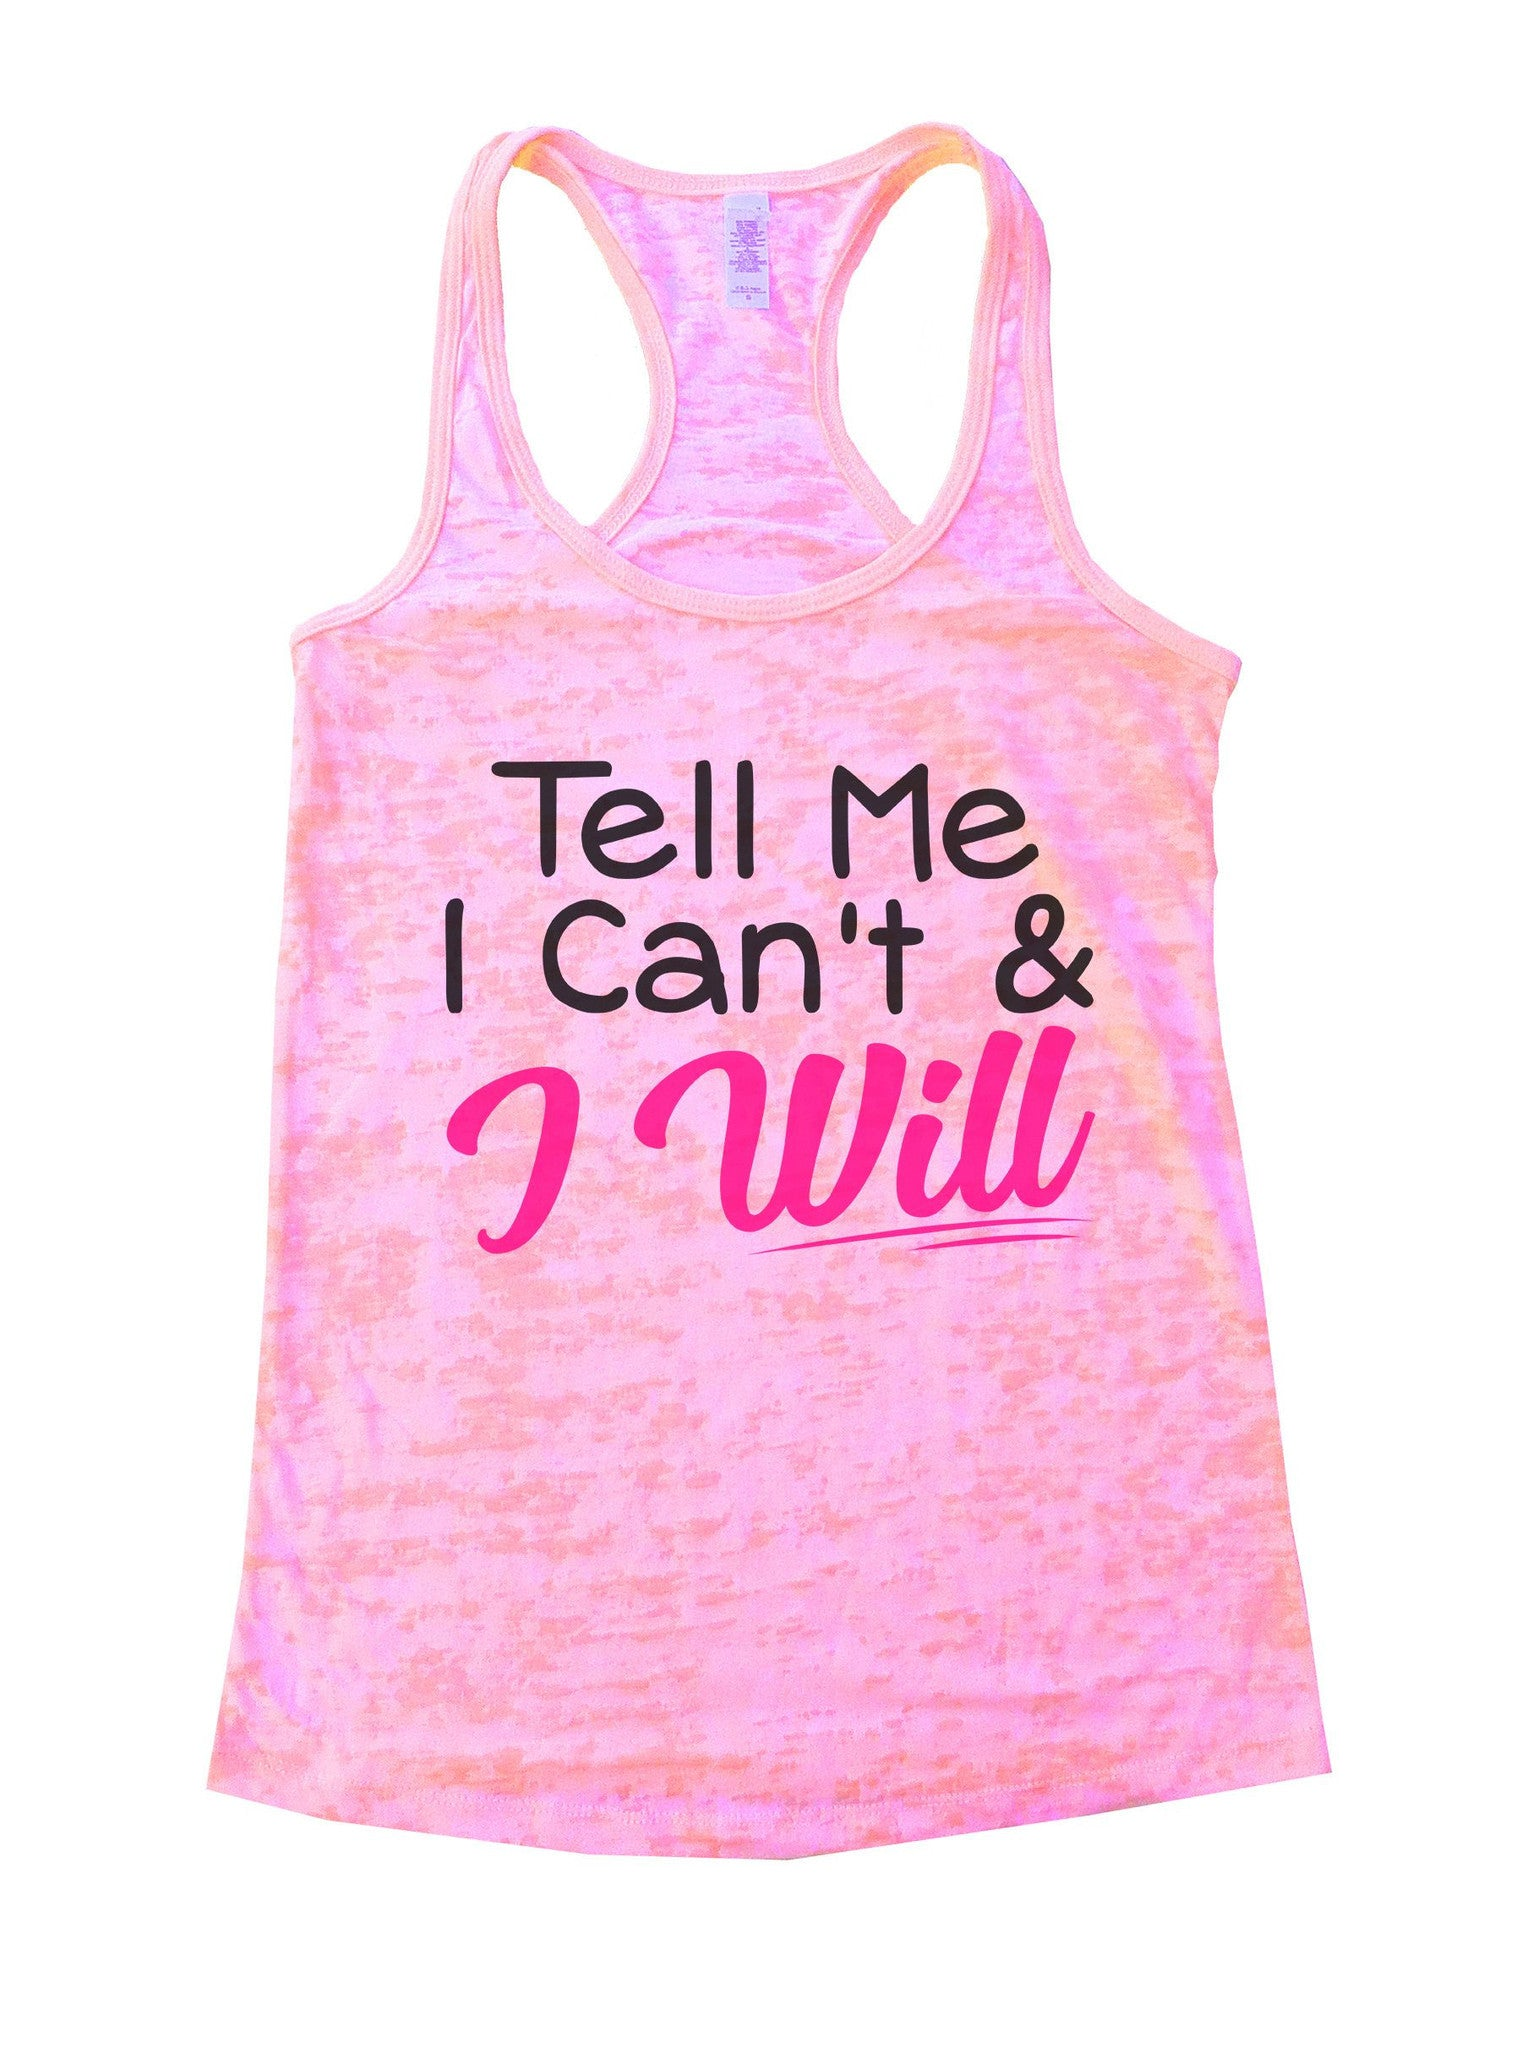 Tell Me I Can't & I Will Burnout Tank Top By BurnoutTankTops.com - 1071 - Funny Shirts Tank Tops Burnouts and Triblends  - 2